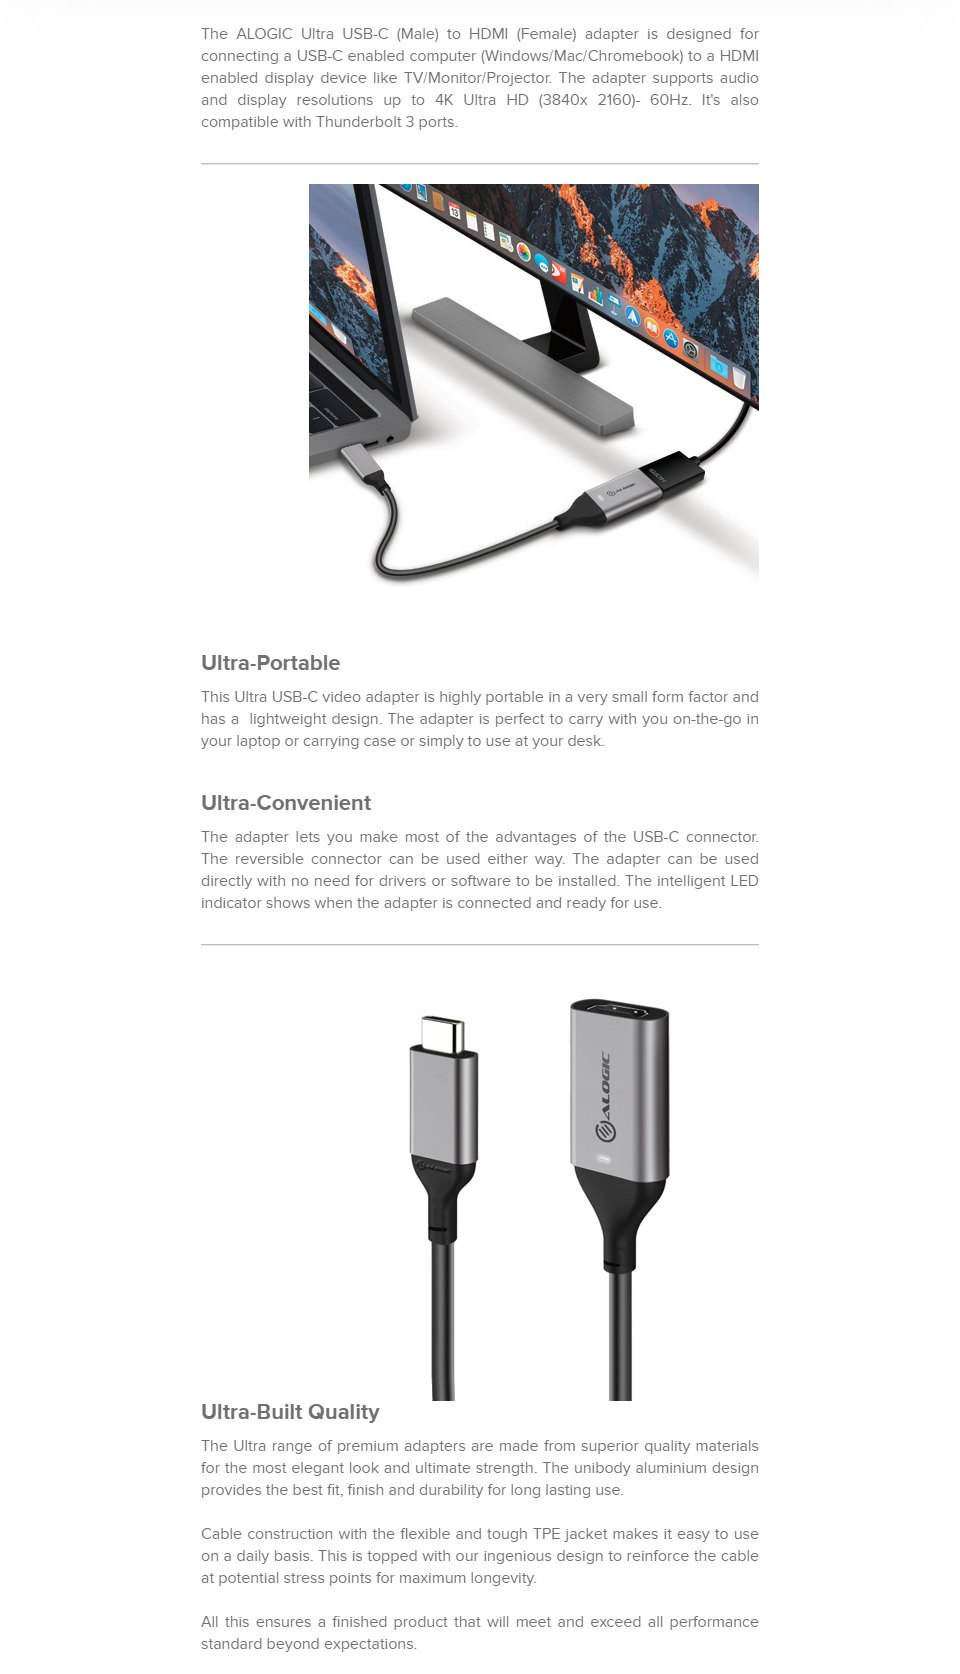 Alogic USB-C to HDMI Adapter 4K60 features